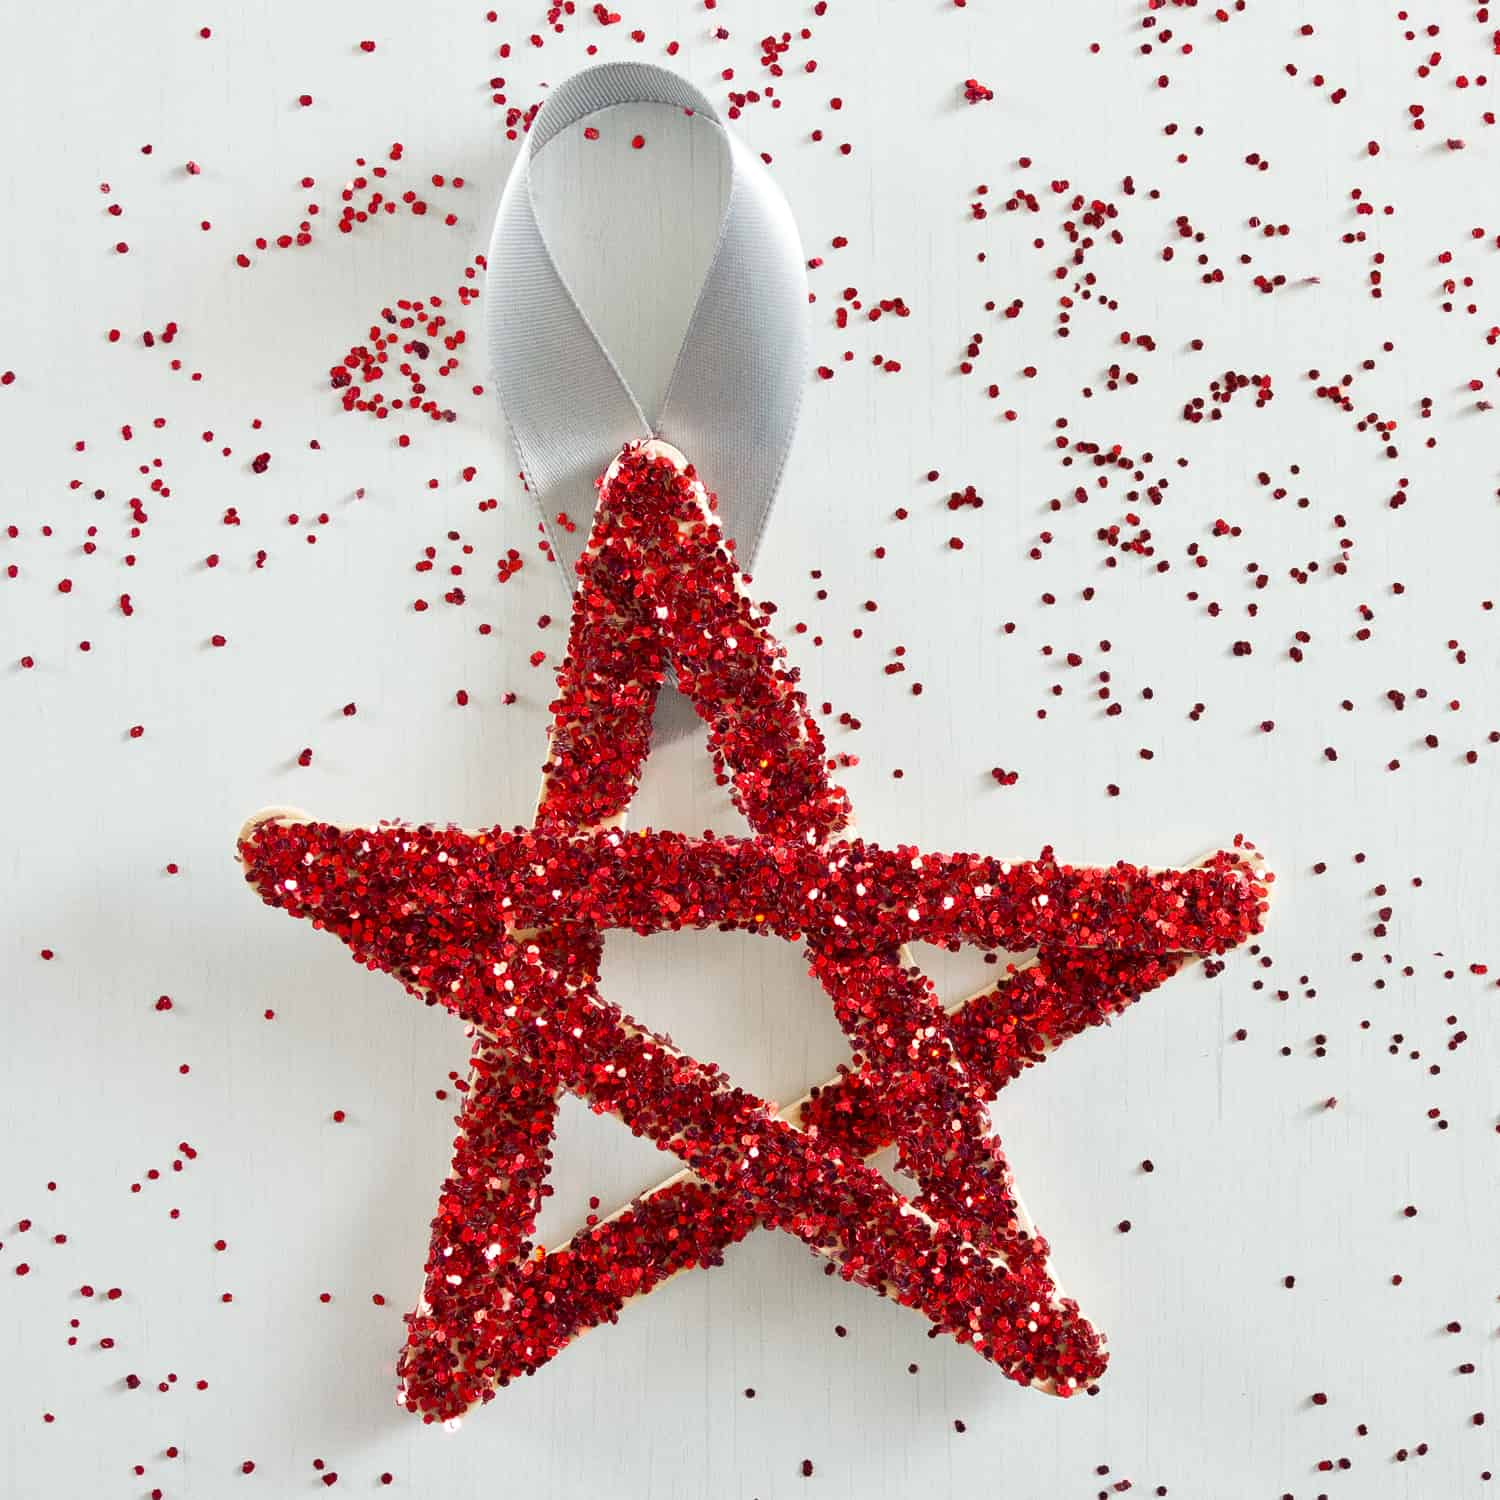 Sparkly popsicle stick star ornaments